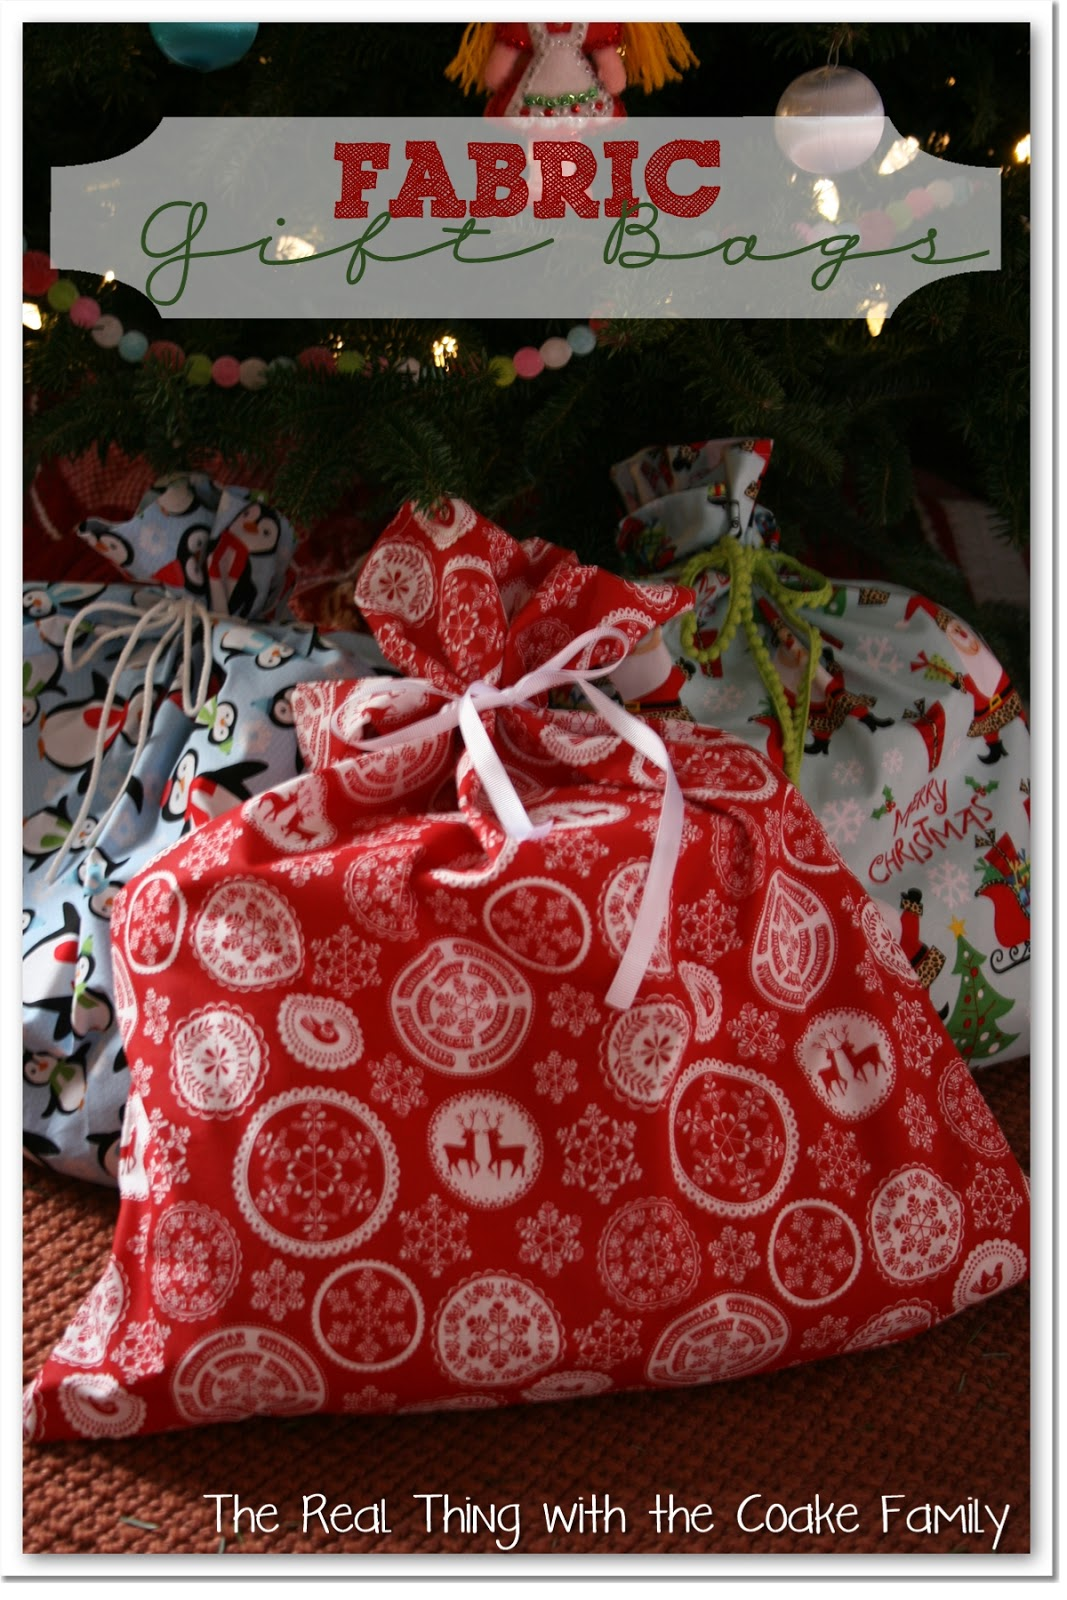 15 Homemade Gift Ideas - The Real Thing with the Coake Family